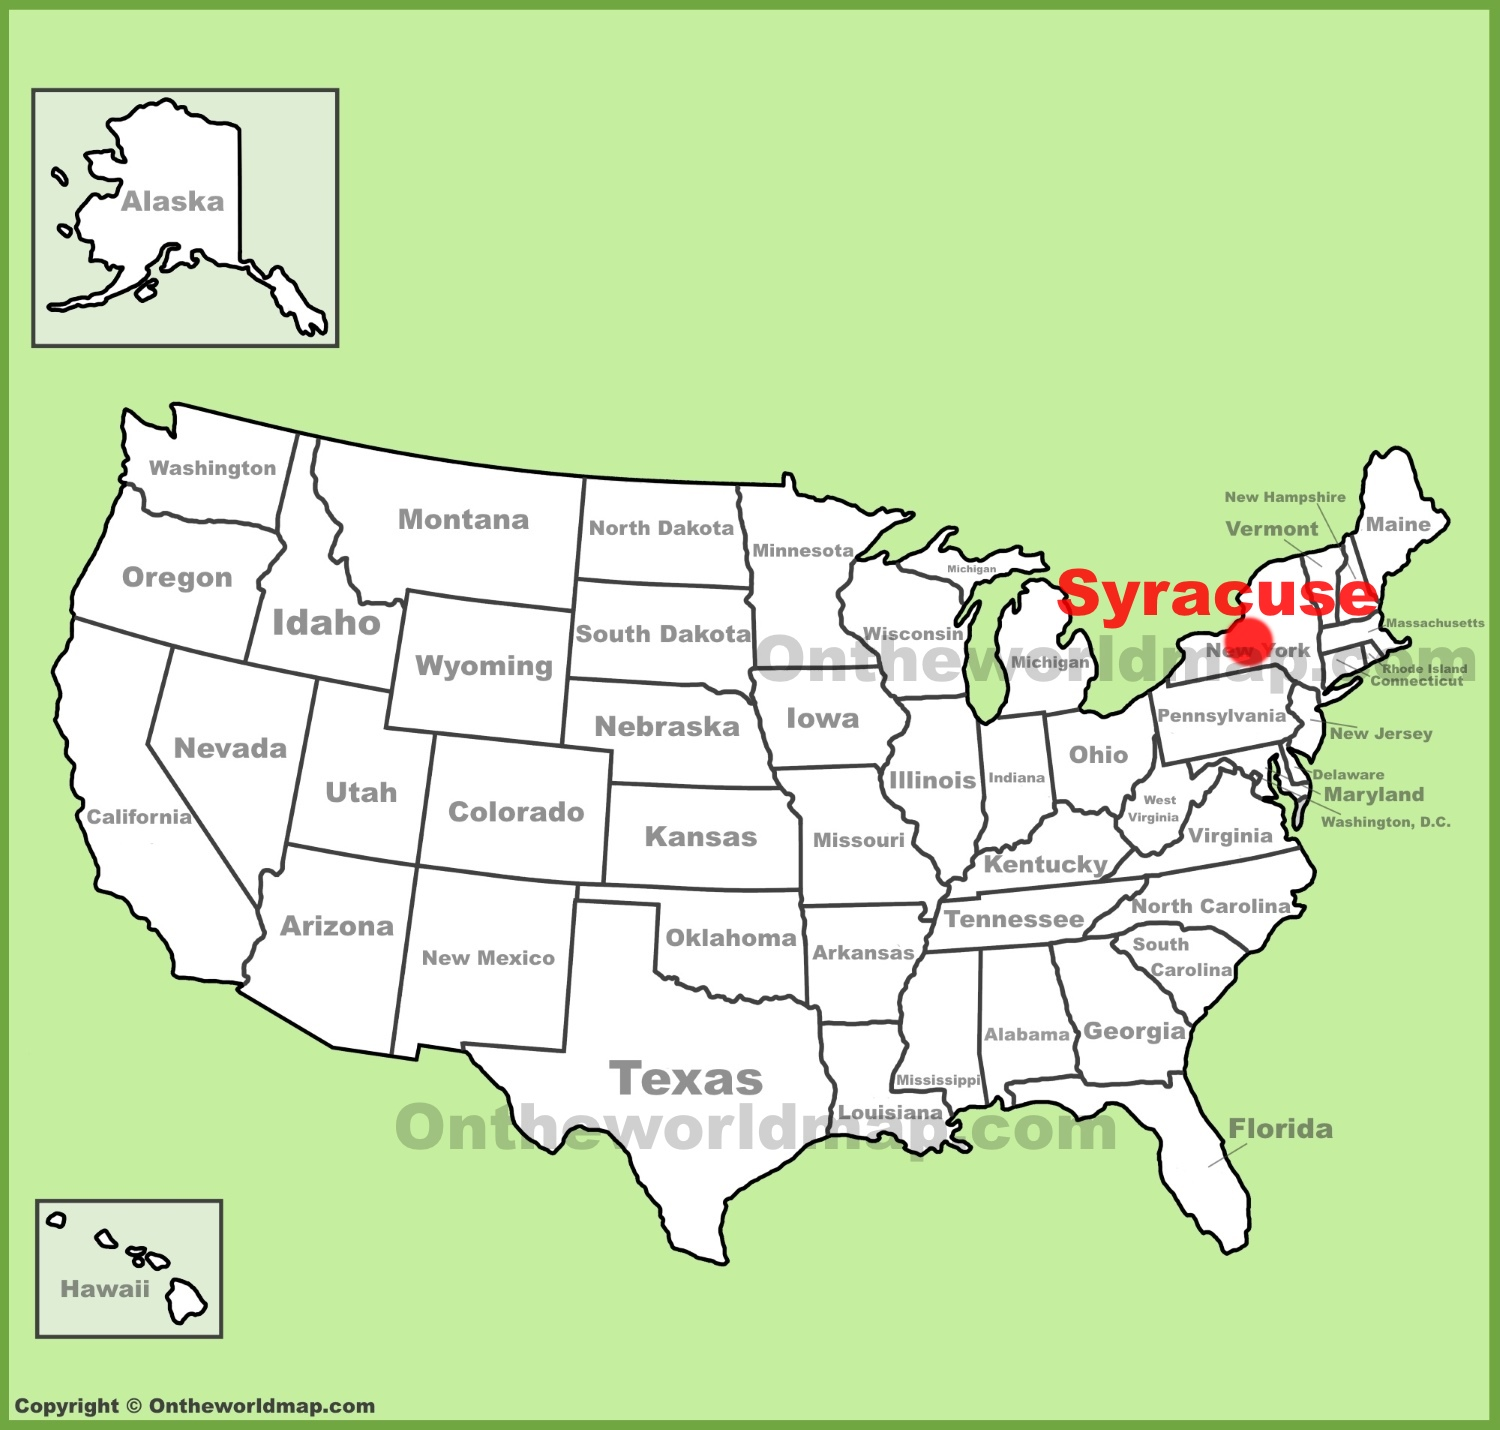 Syracuse location on the US Map